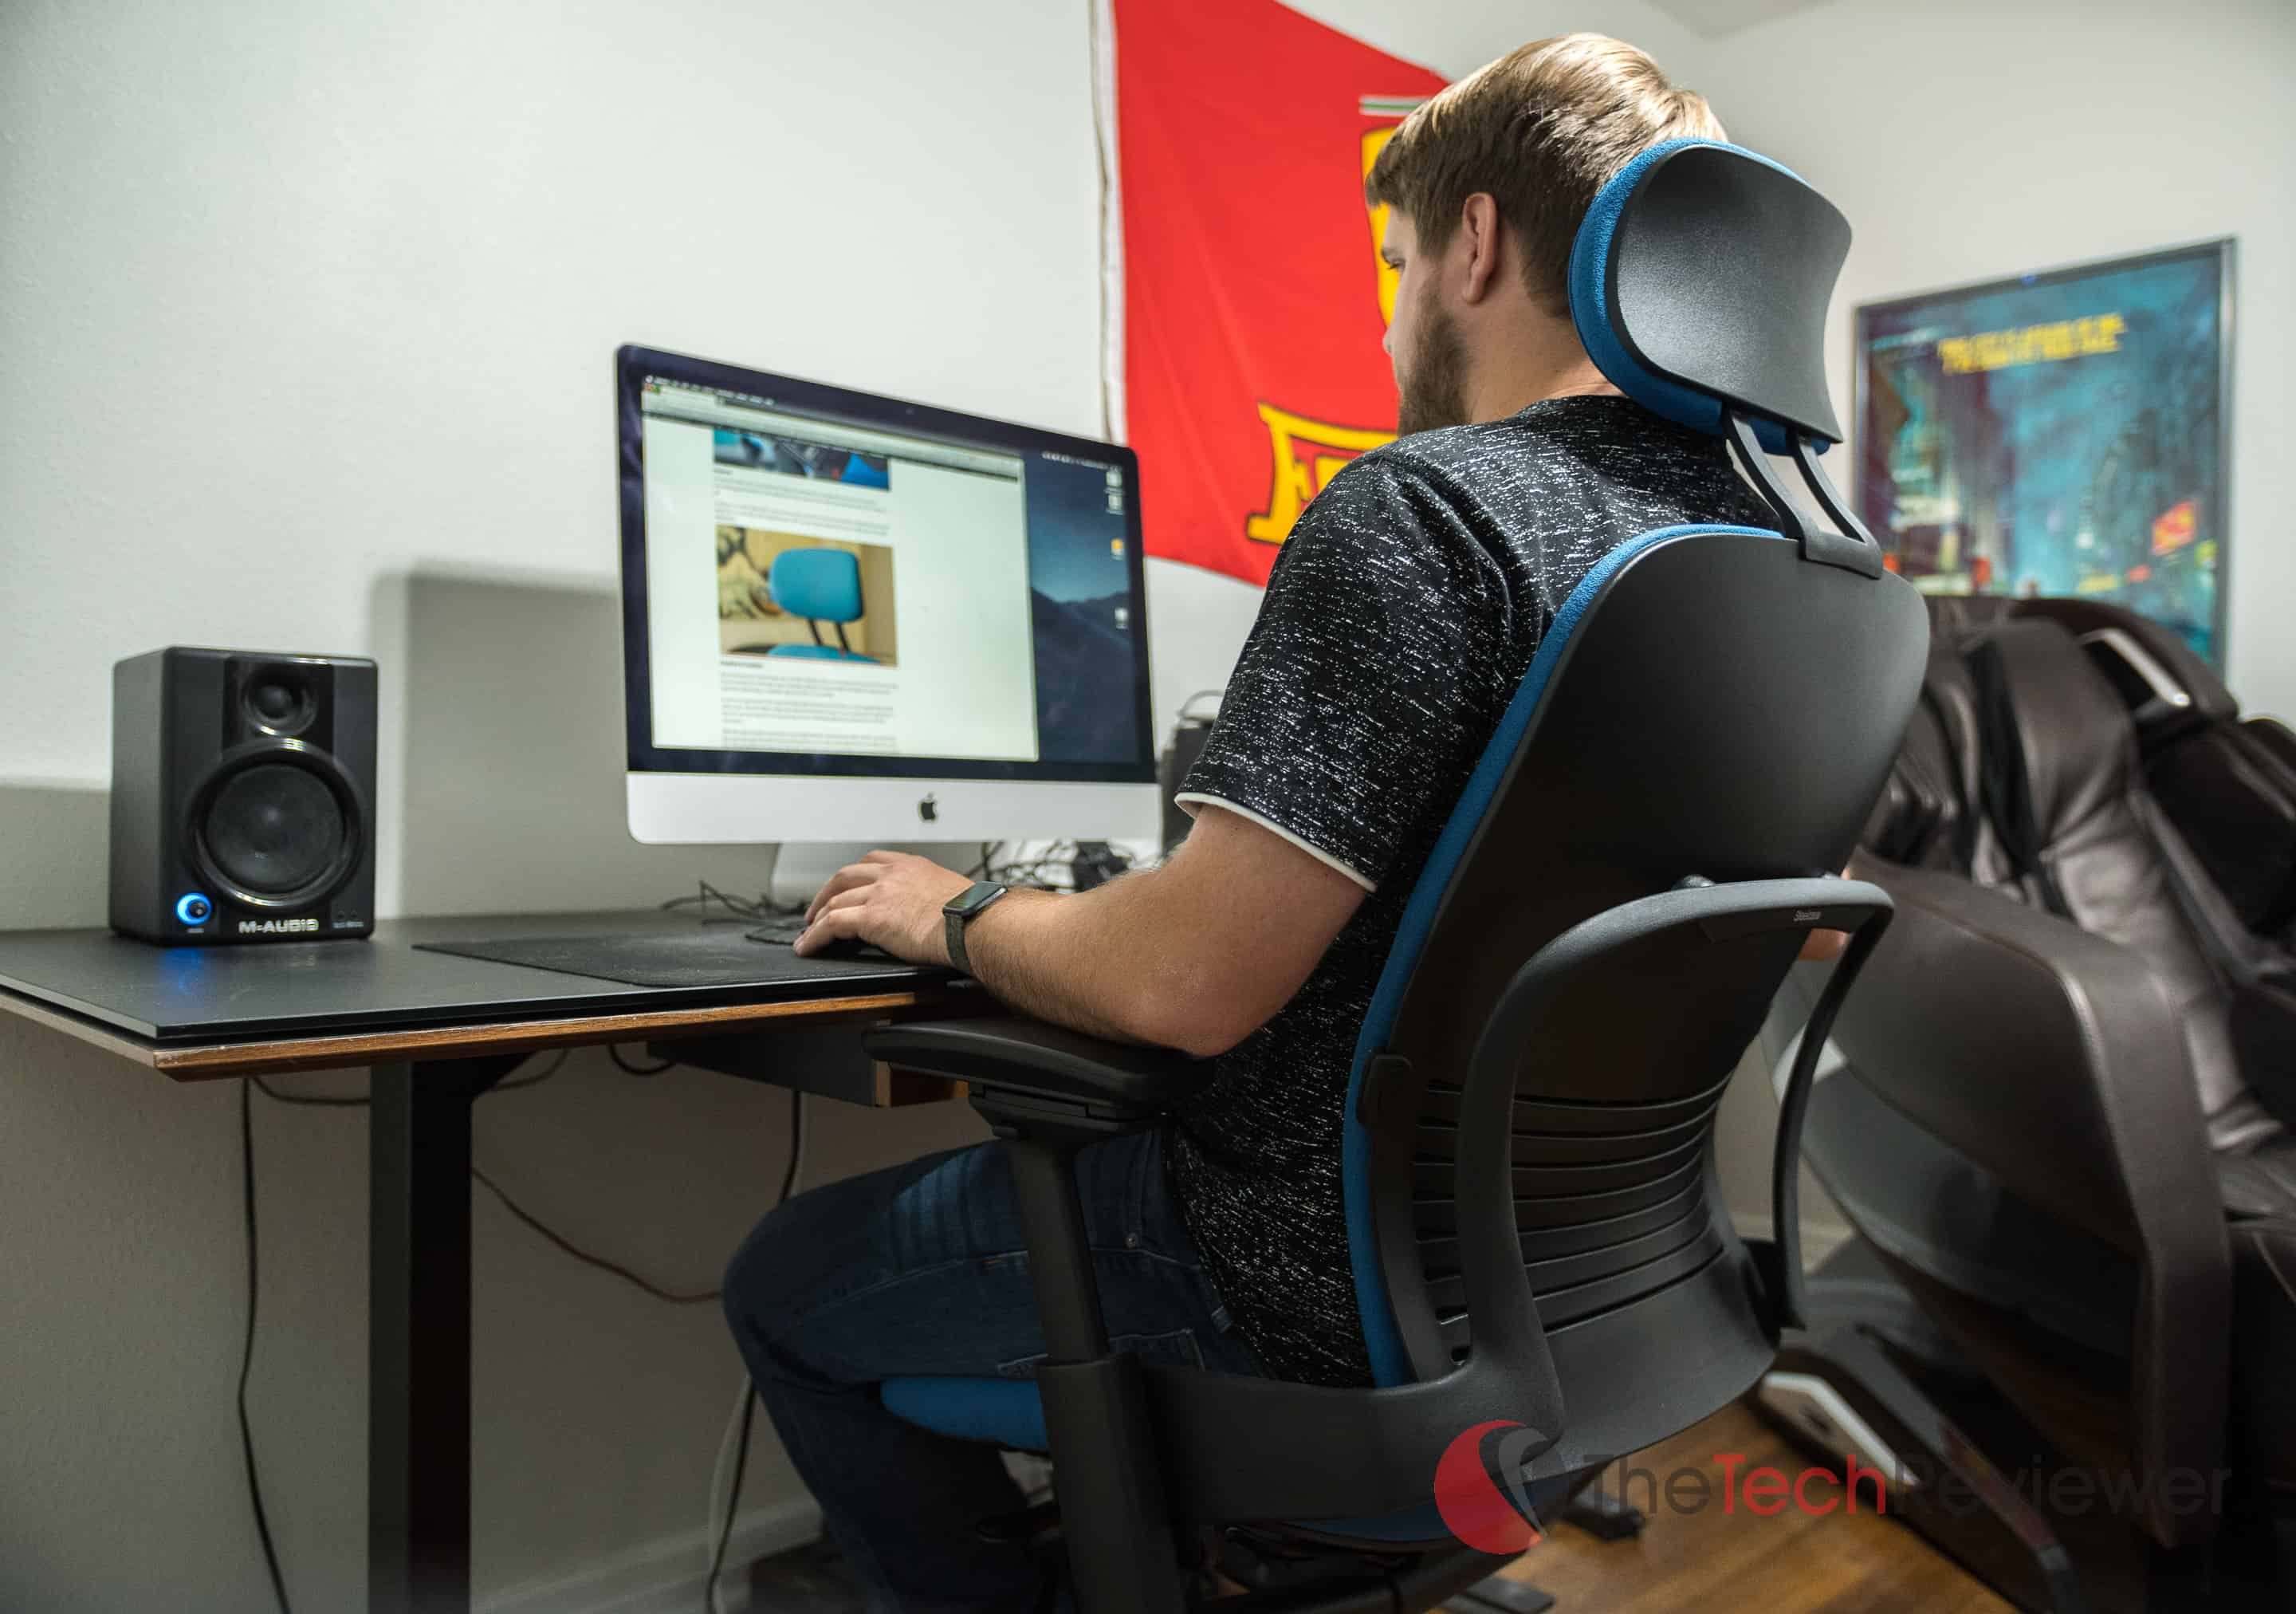 Chair In Use